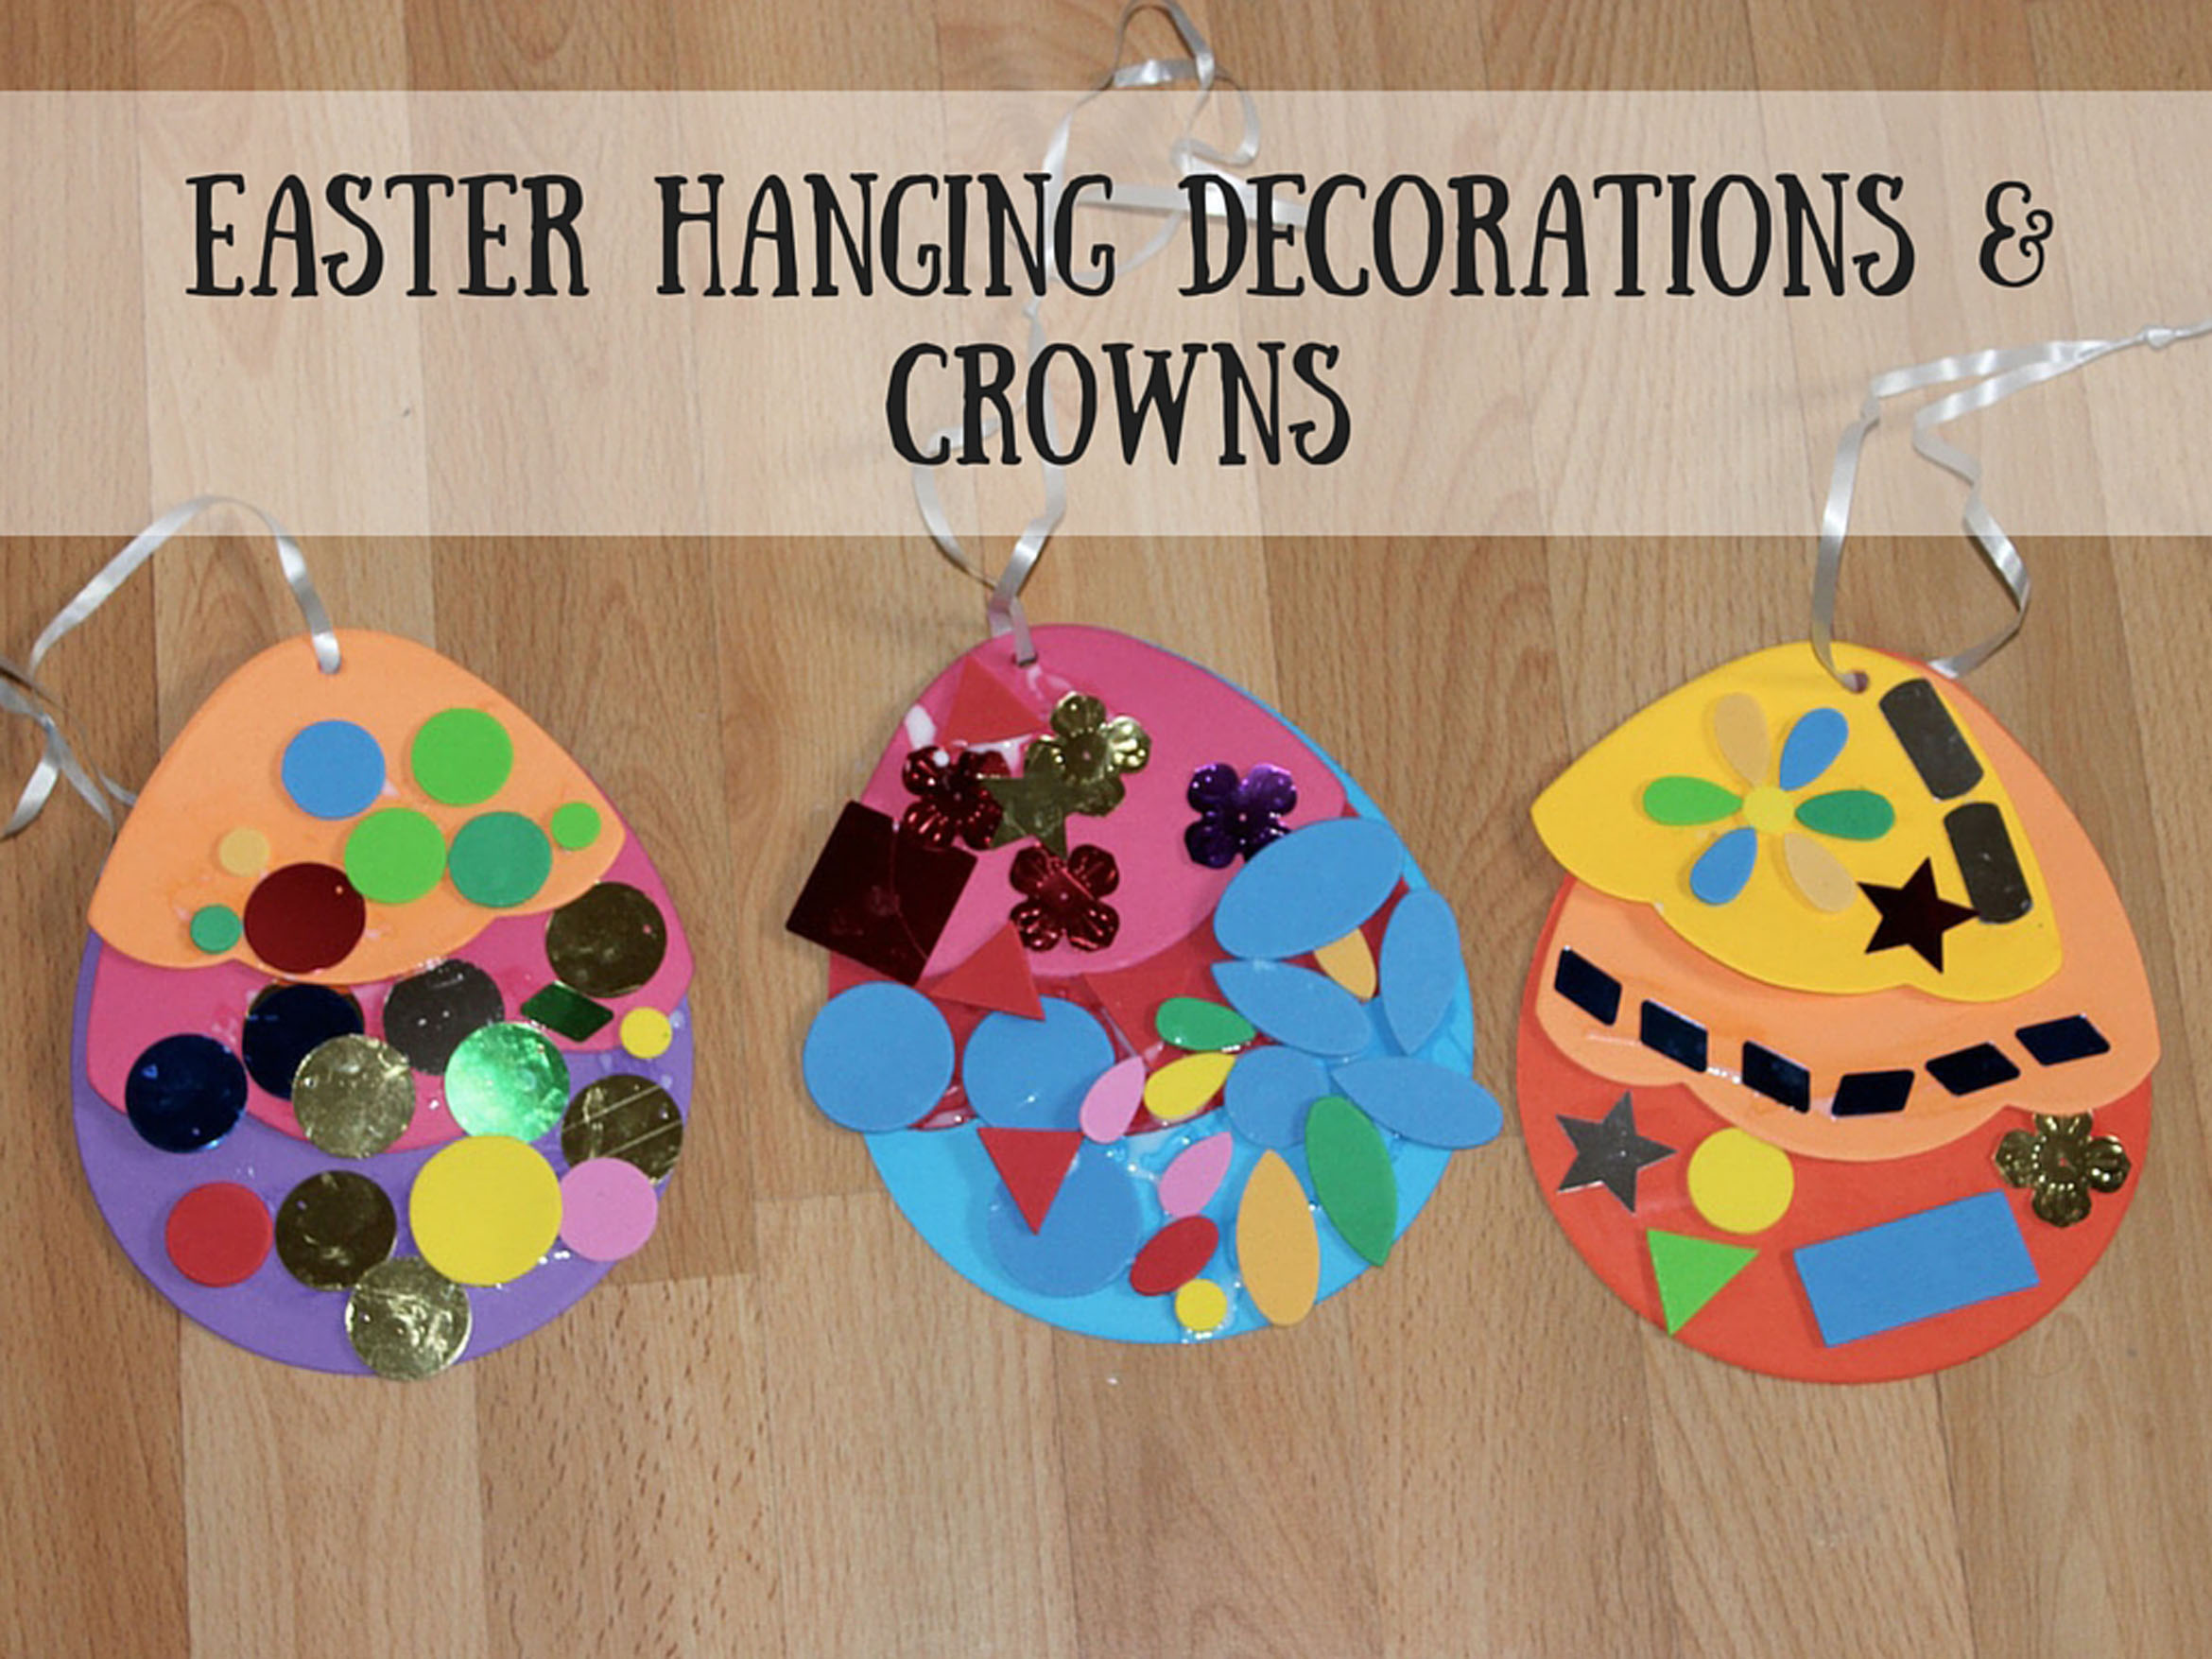 Easter hanging decorations & crowns